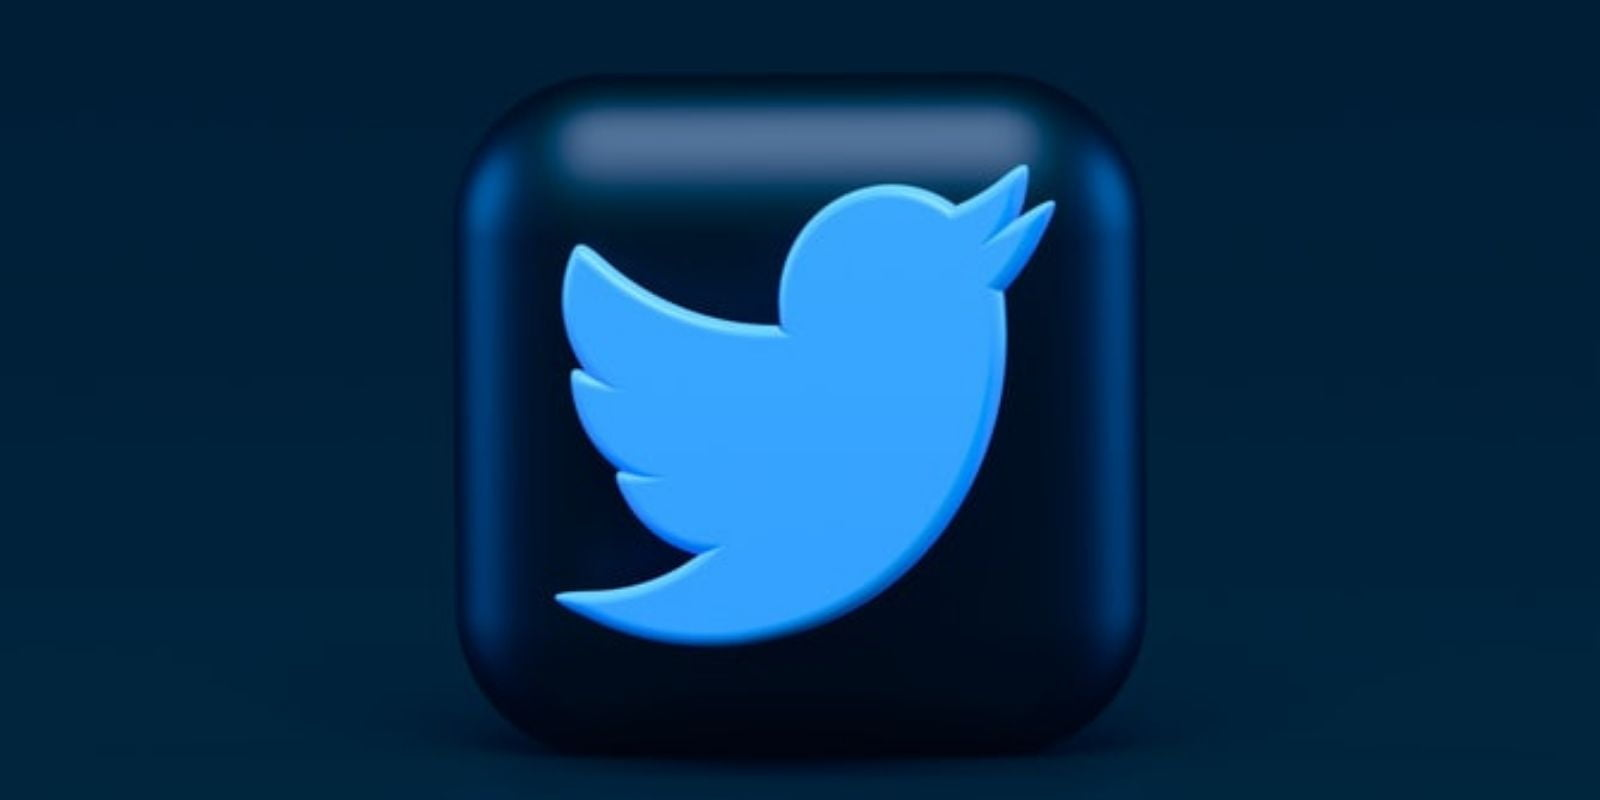 An icon of Twitter with dark blue squared background